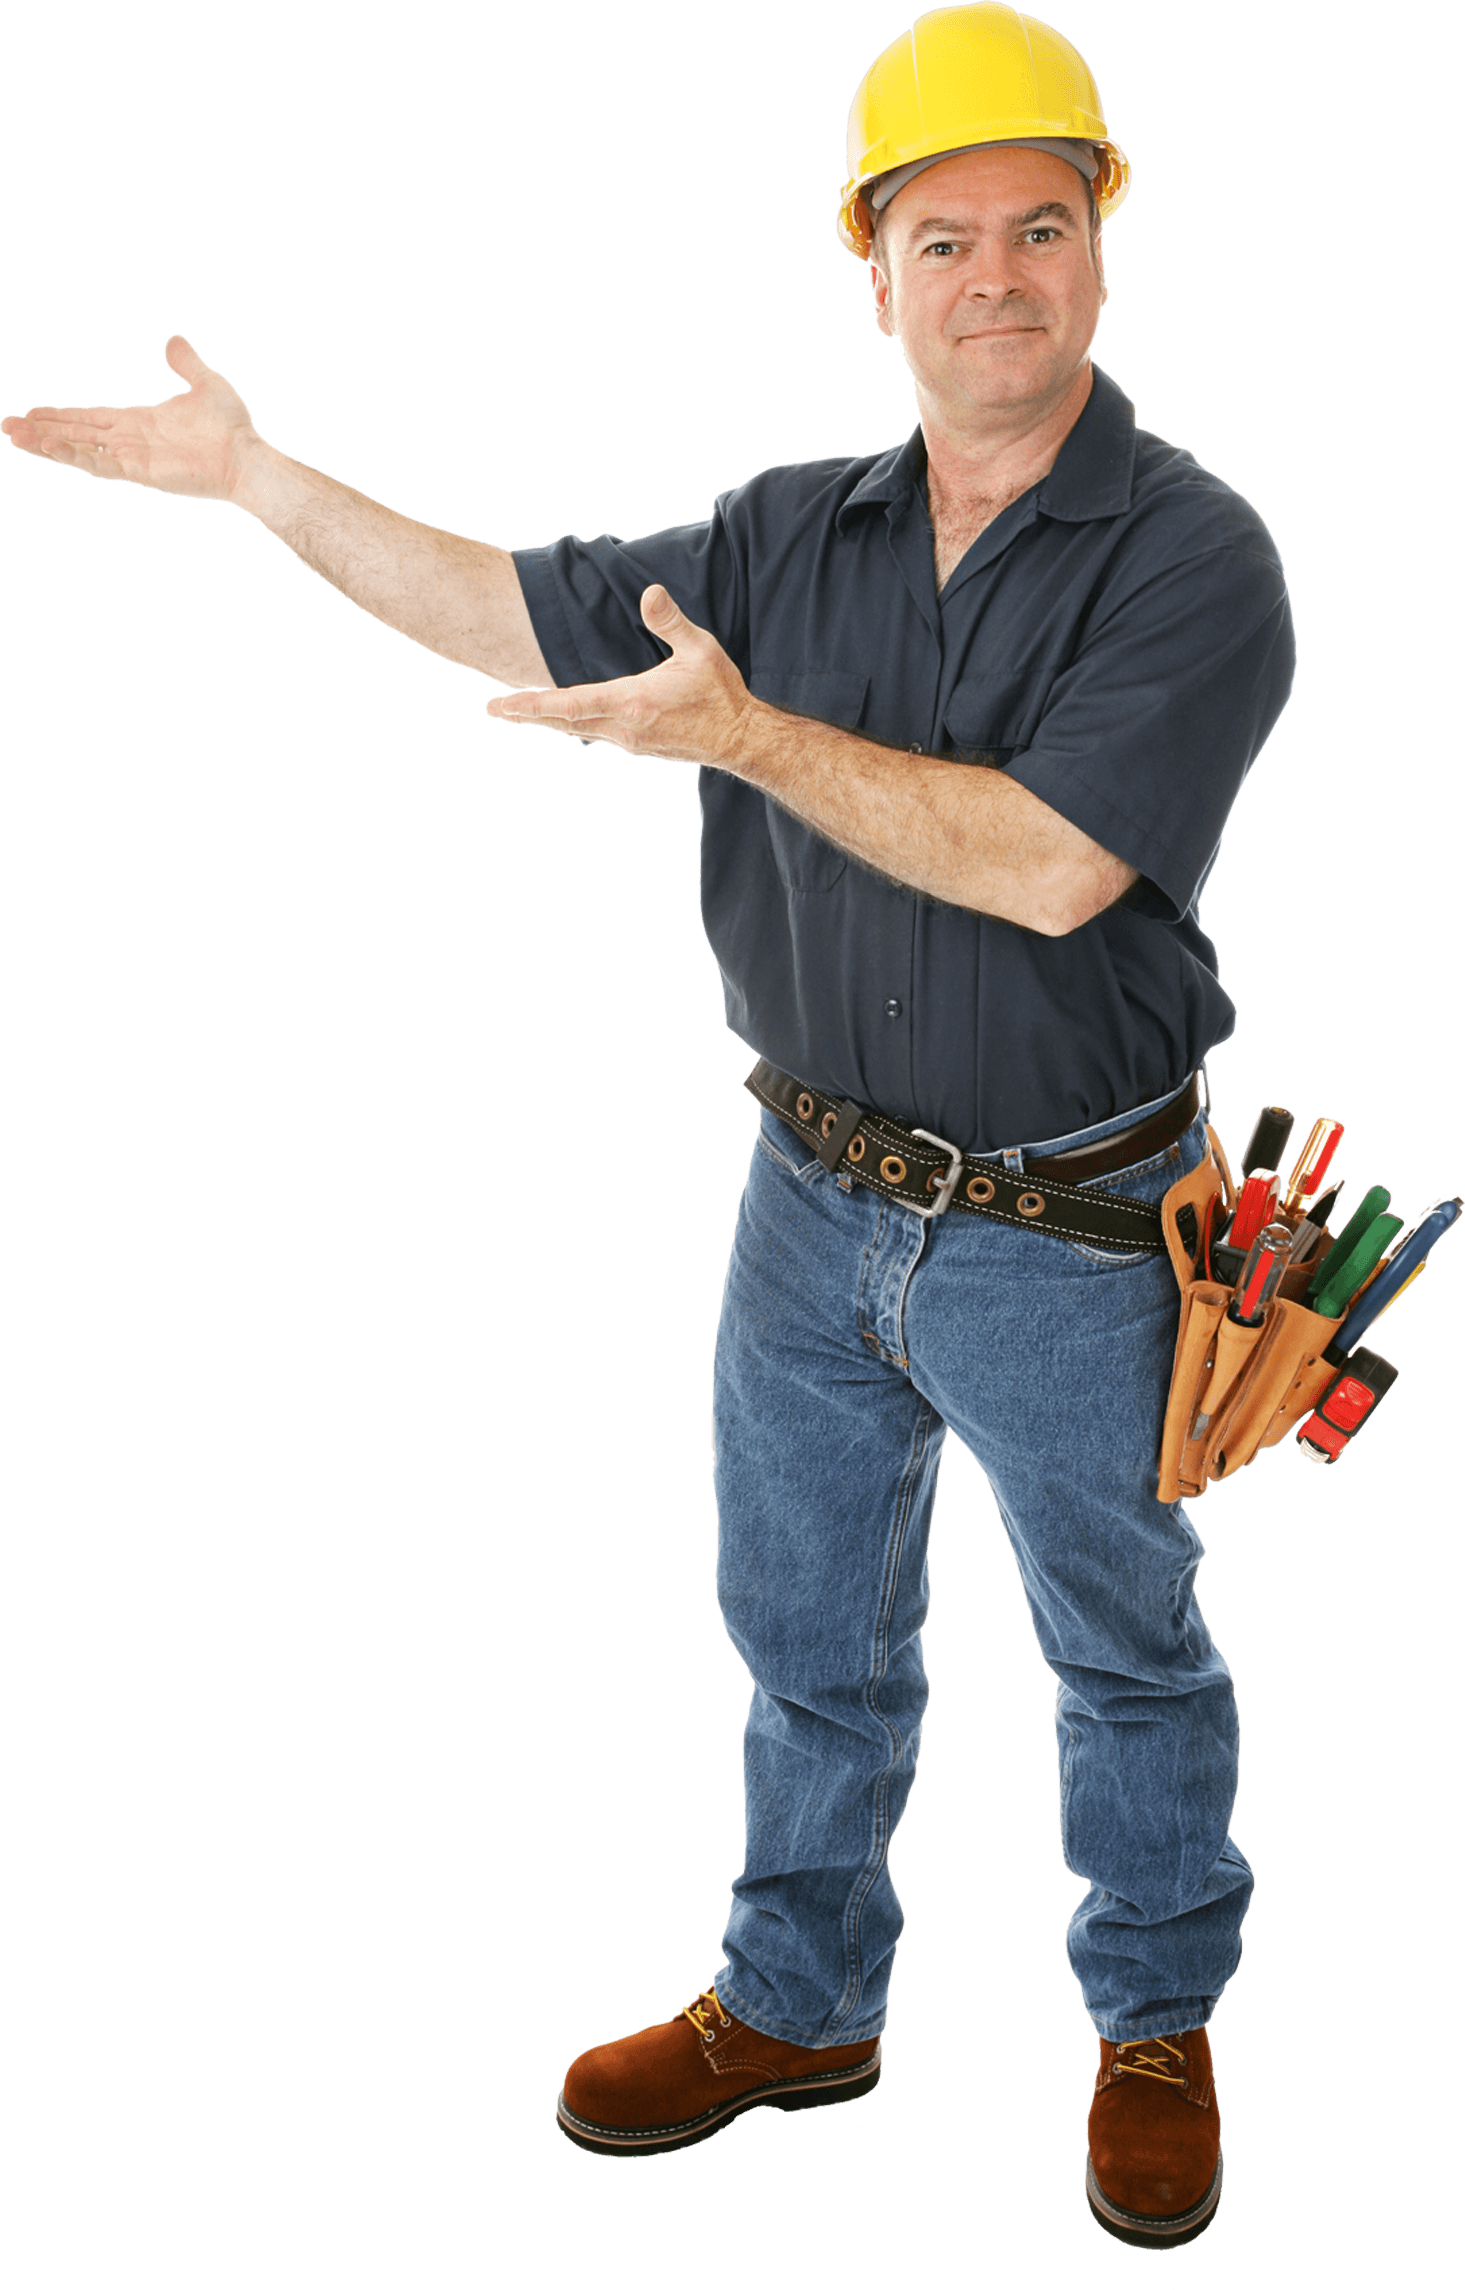 Man Technic Png Image PNG Image